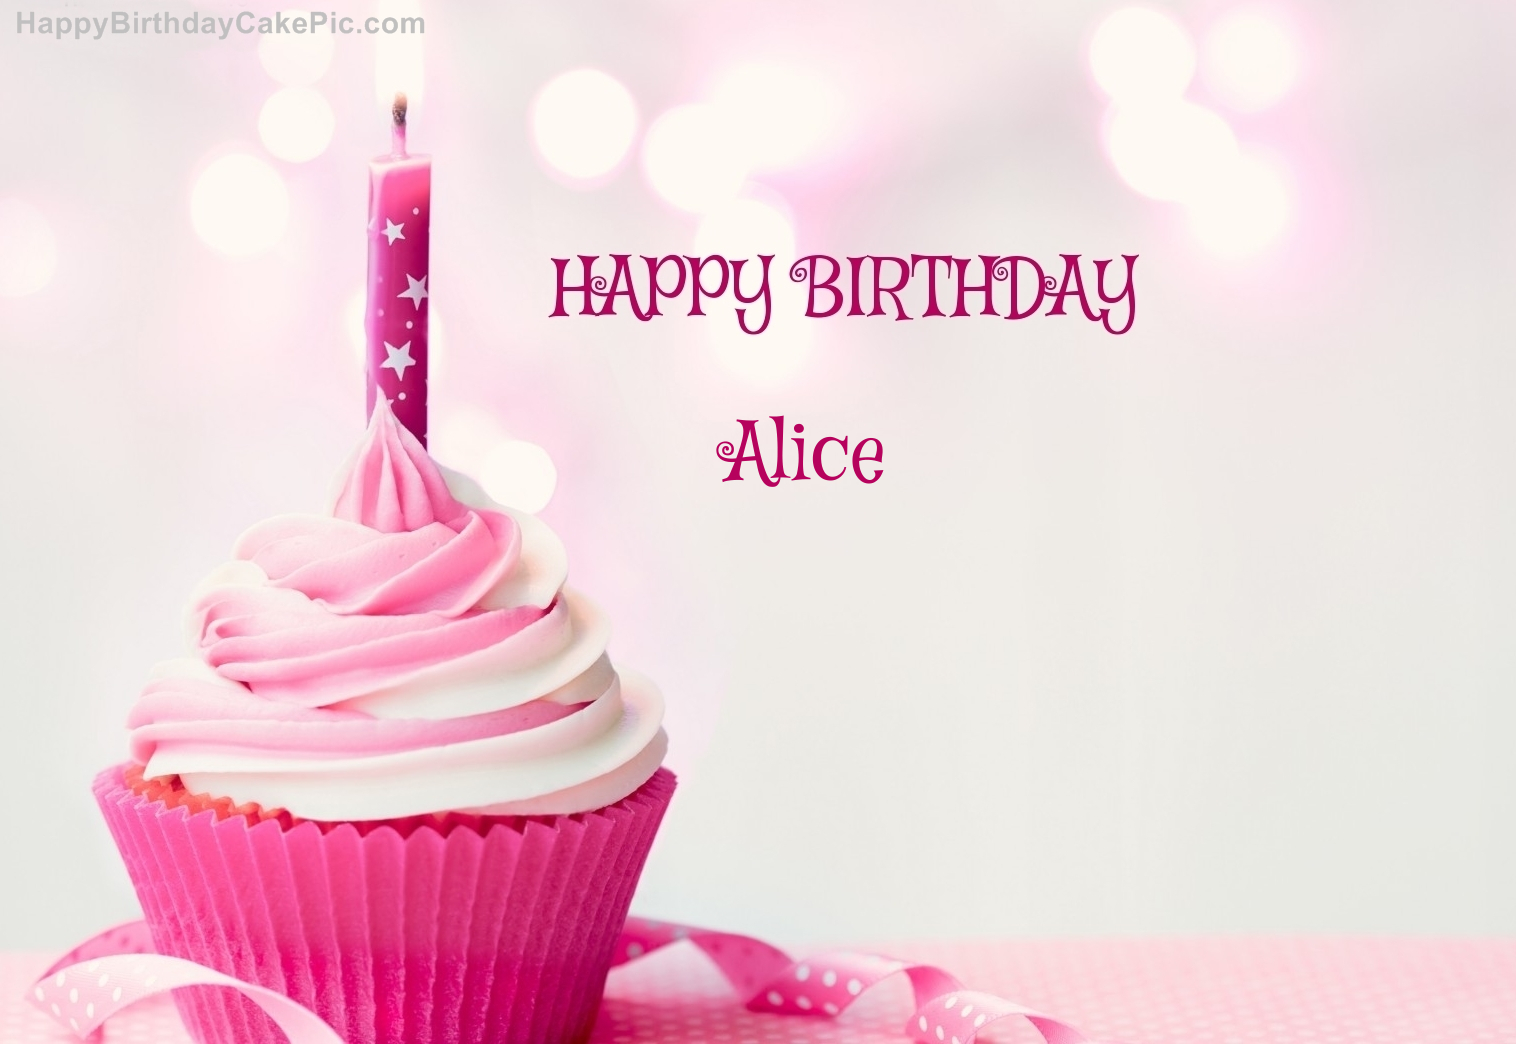 Happy Birthday Cupcake Candle Pink Cake For Alice